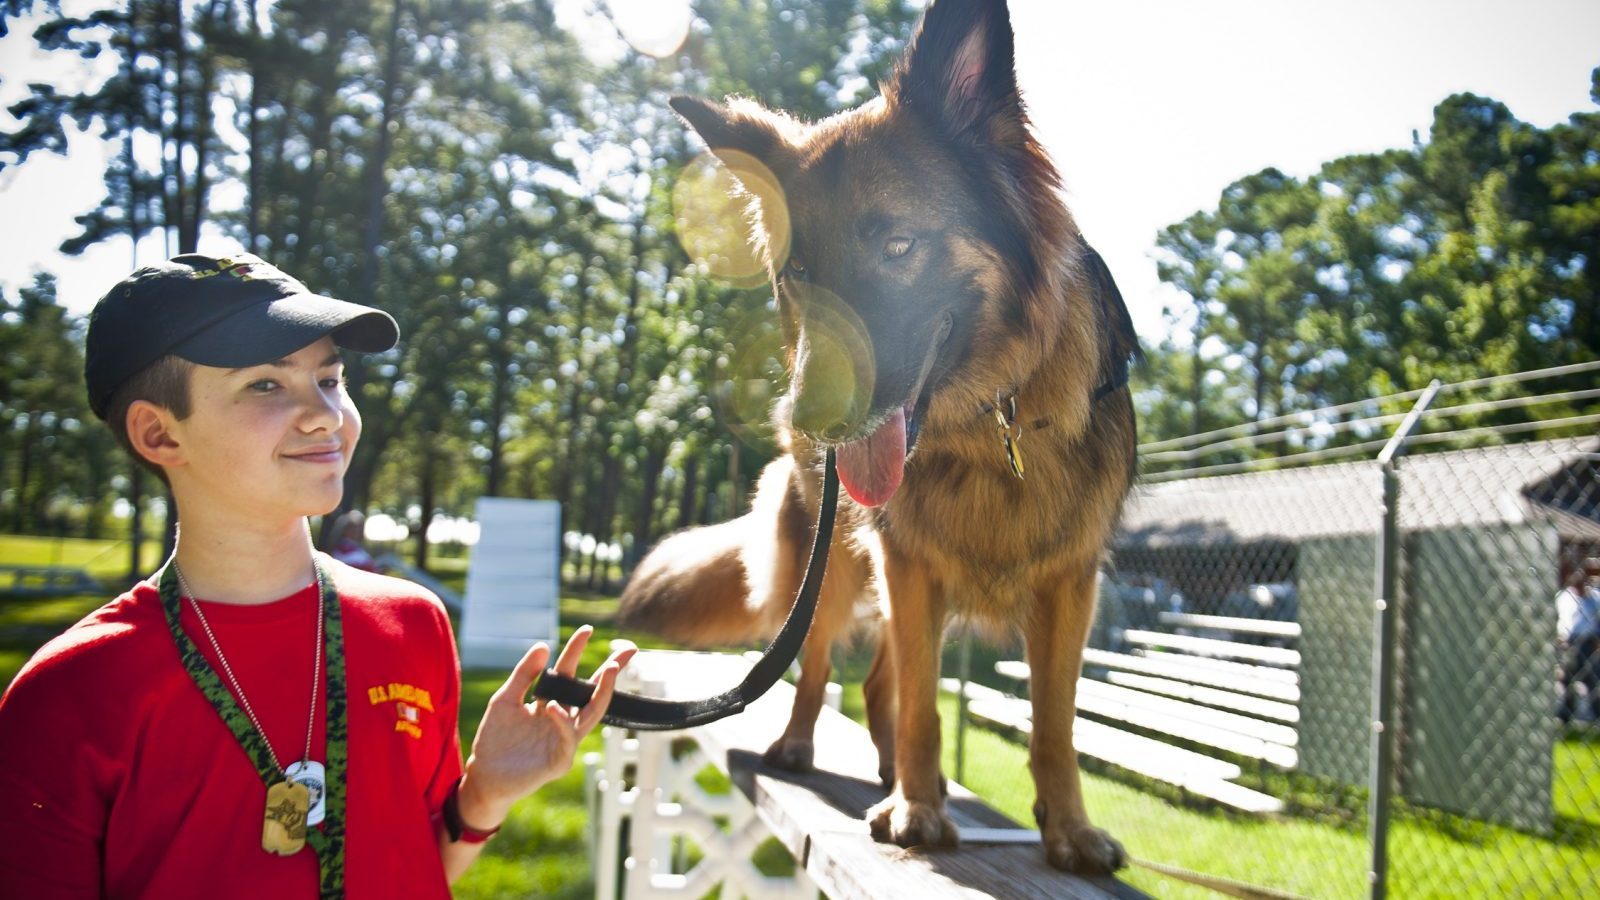 Image: a boy and his seizure response dog train together